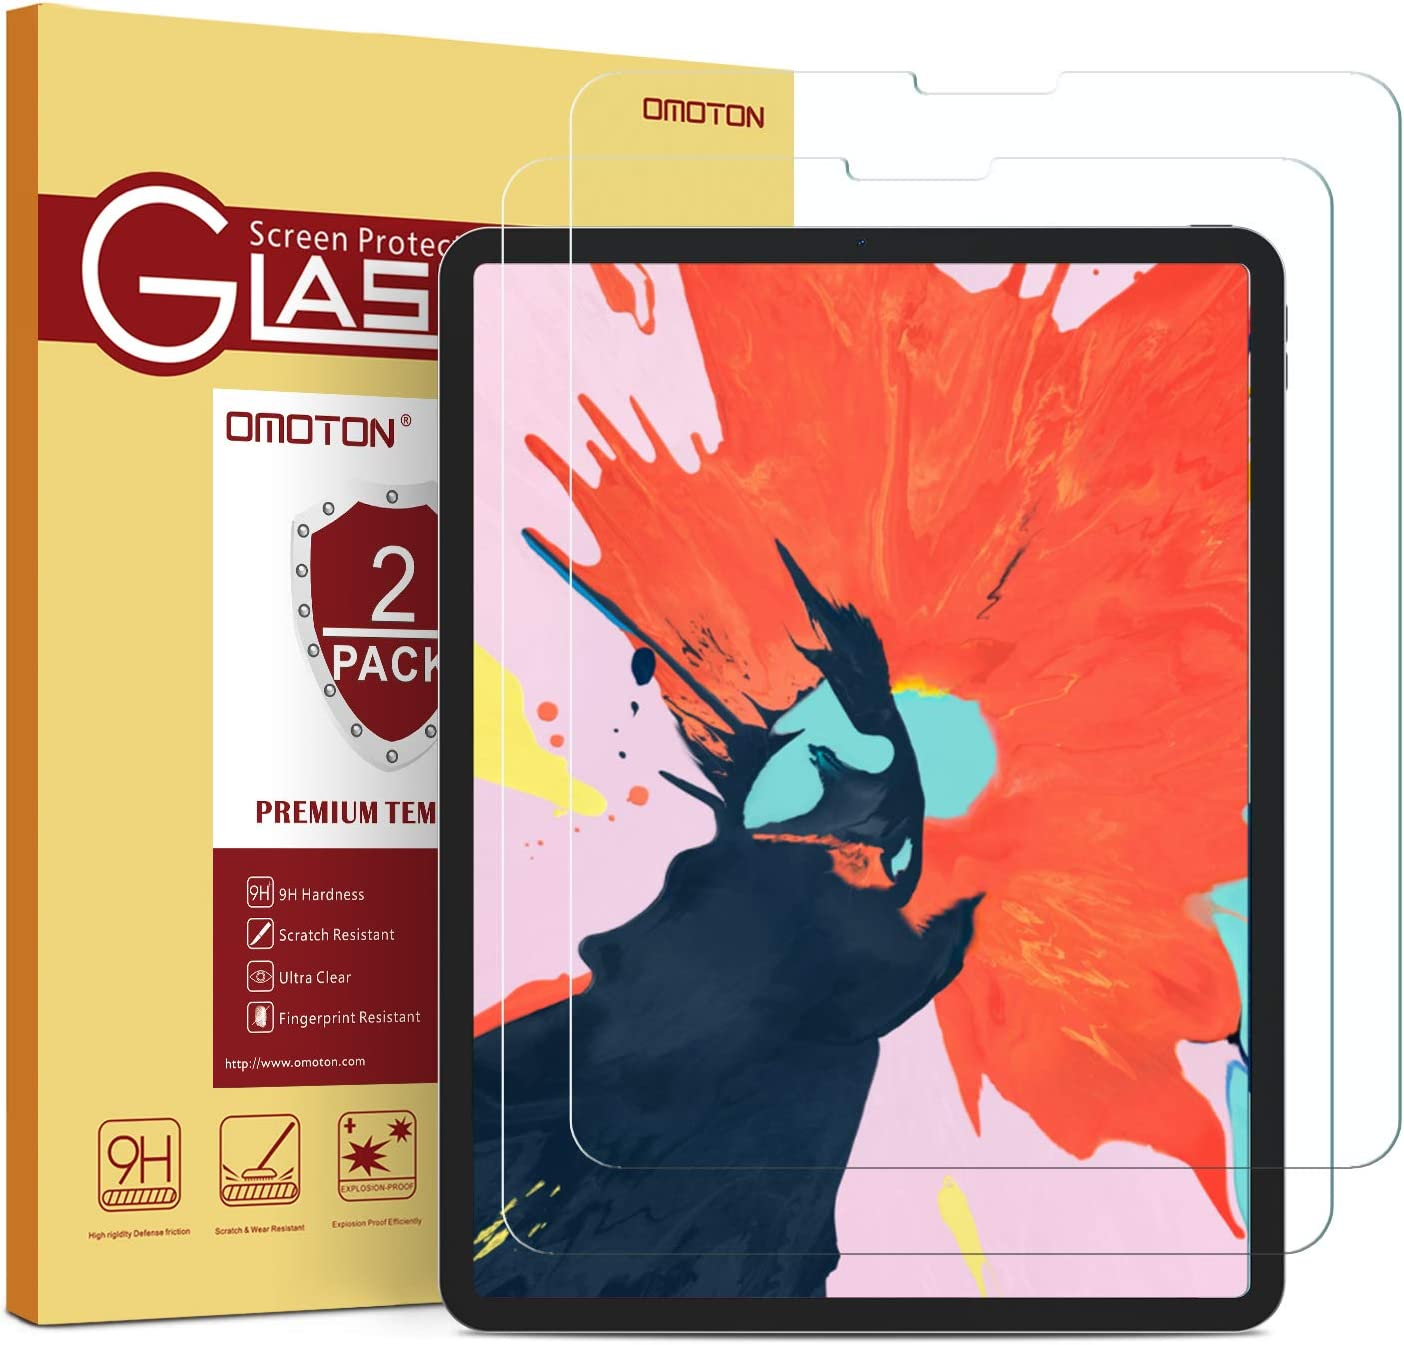 OMOTON [2 Pack] Screen Protector for iPad Pro 12.9 2018 (3rd Gen) [Work with Face ID & Apple Pencil] - Tempered Glass/High Definition / 9 Hardness